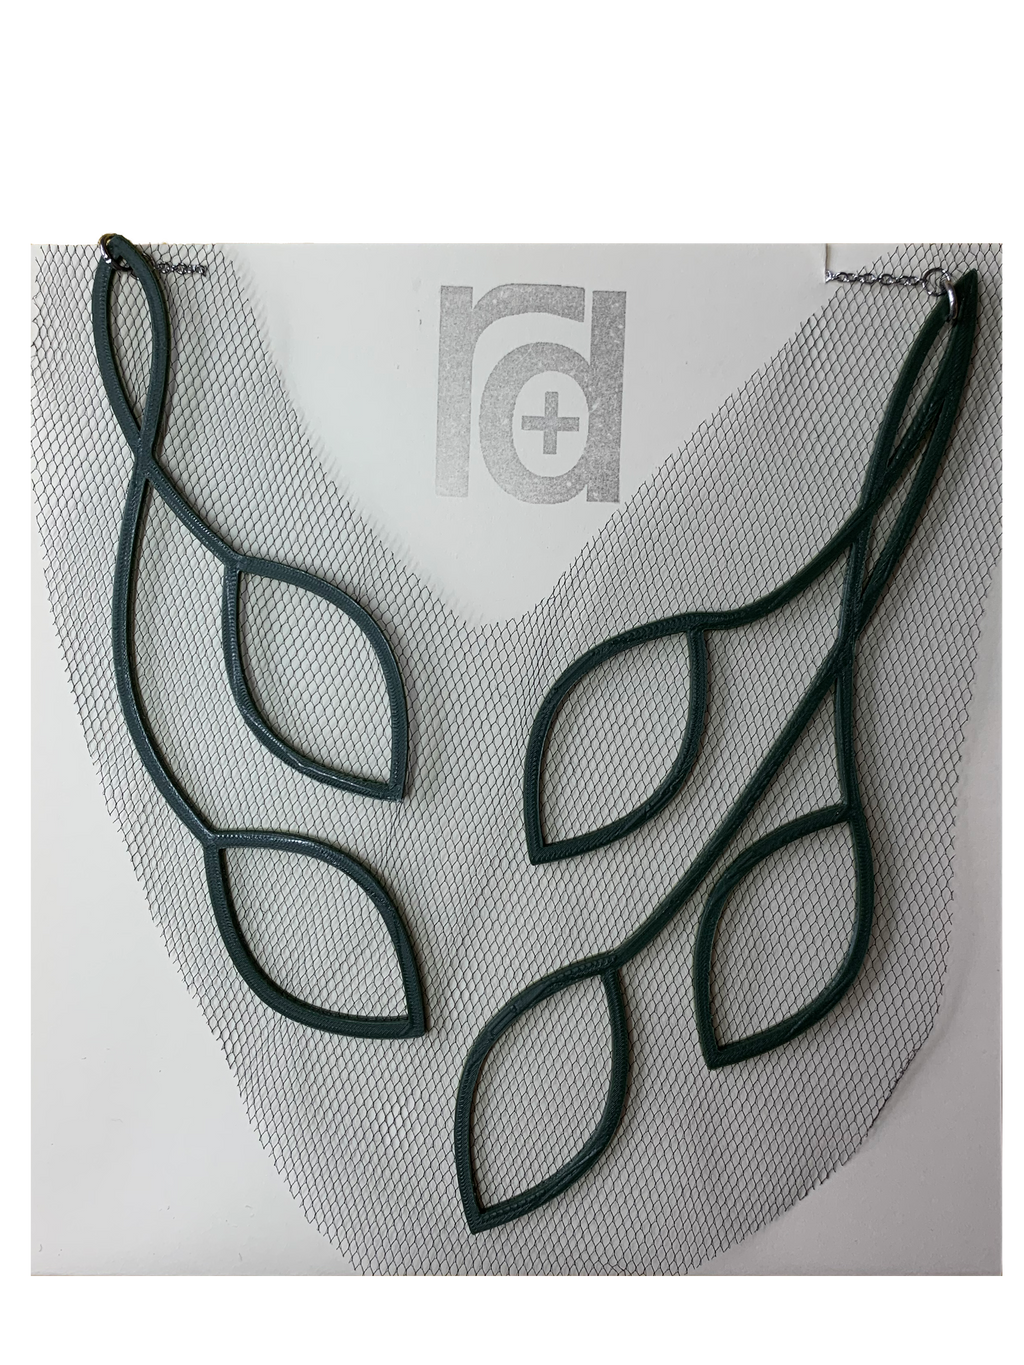 Shown on cream paper packaging, this 3D printed necklace has vines that twist to leaves in a elegant way. They are printed in a sustainable olive green filament with a black tulle fabric embedded.